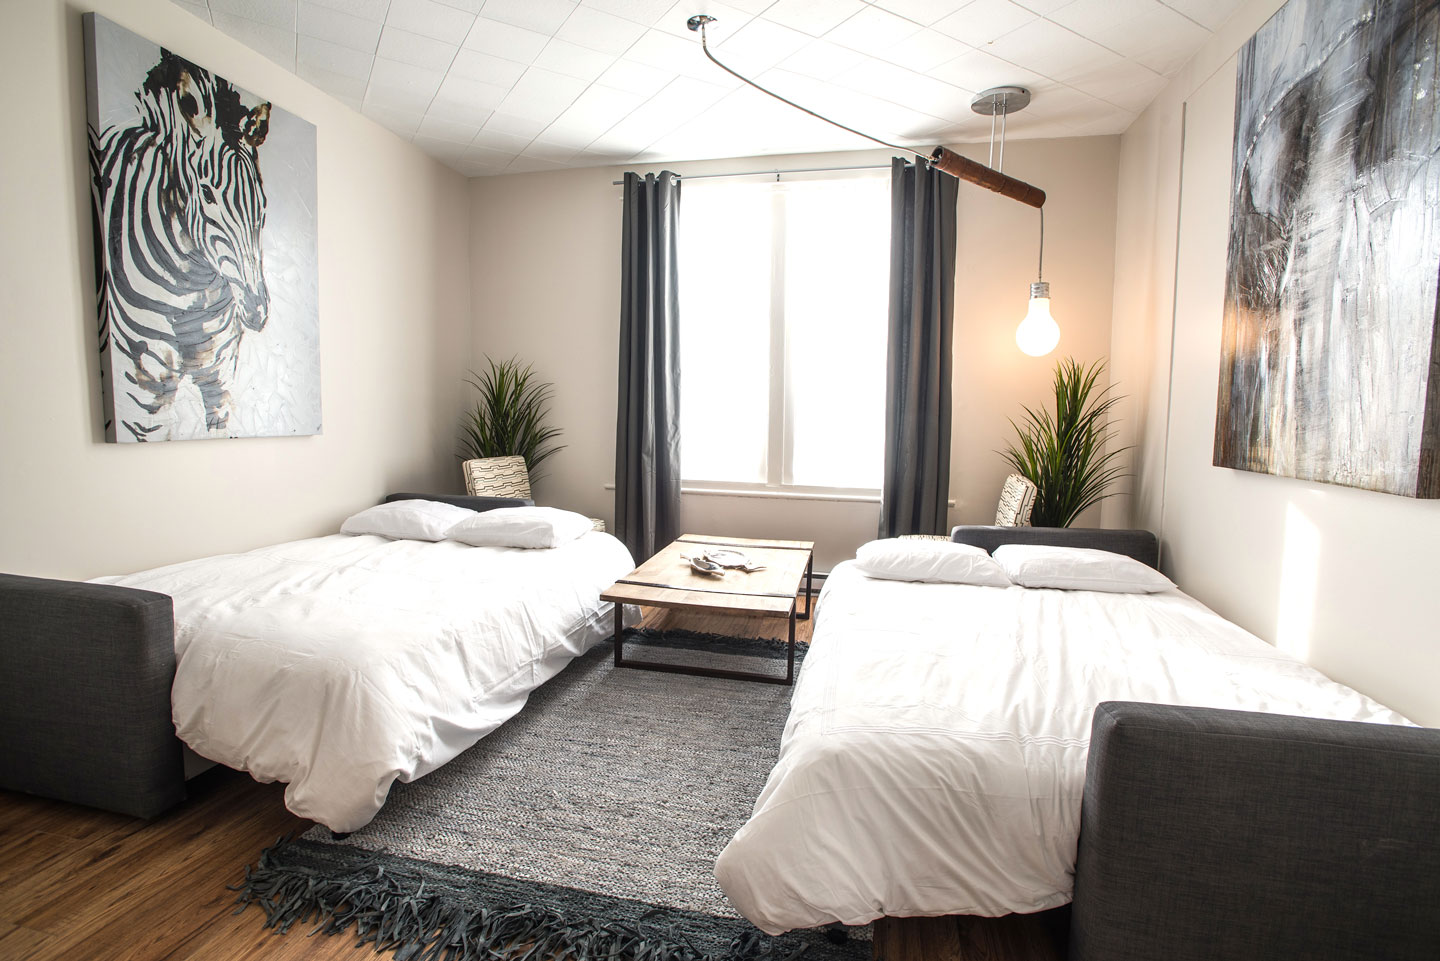 Mtl Zoo: spacious living room with 2 sofa beds